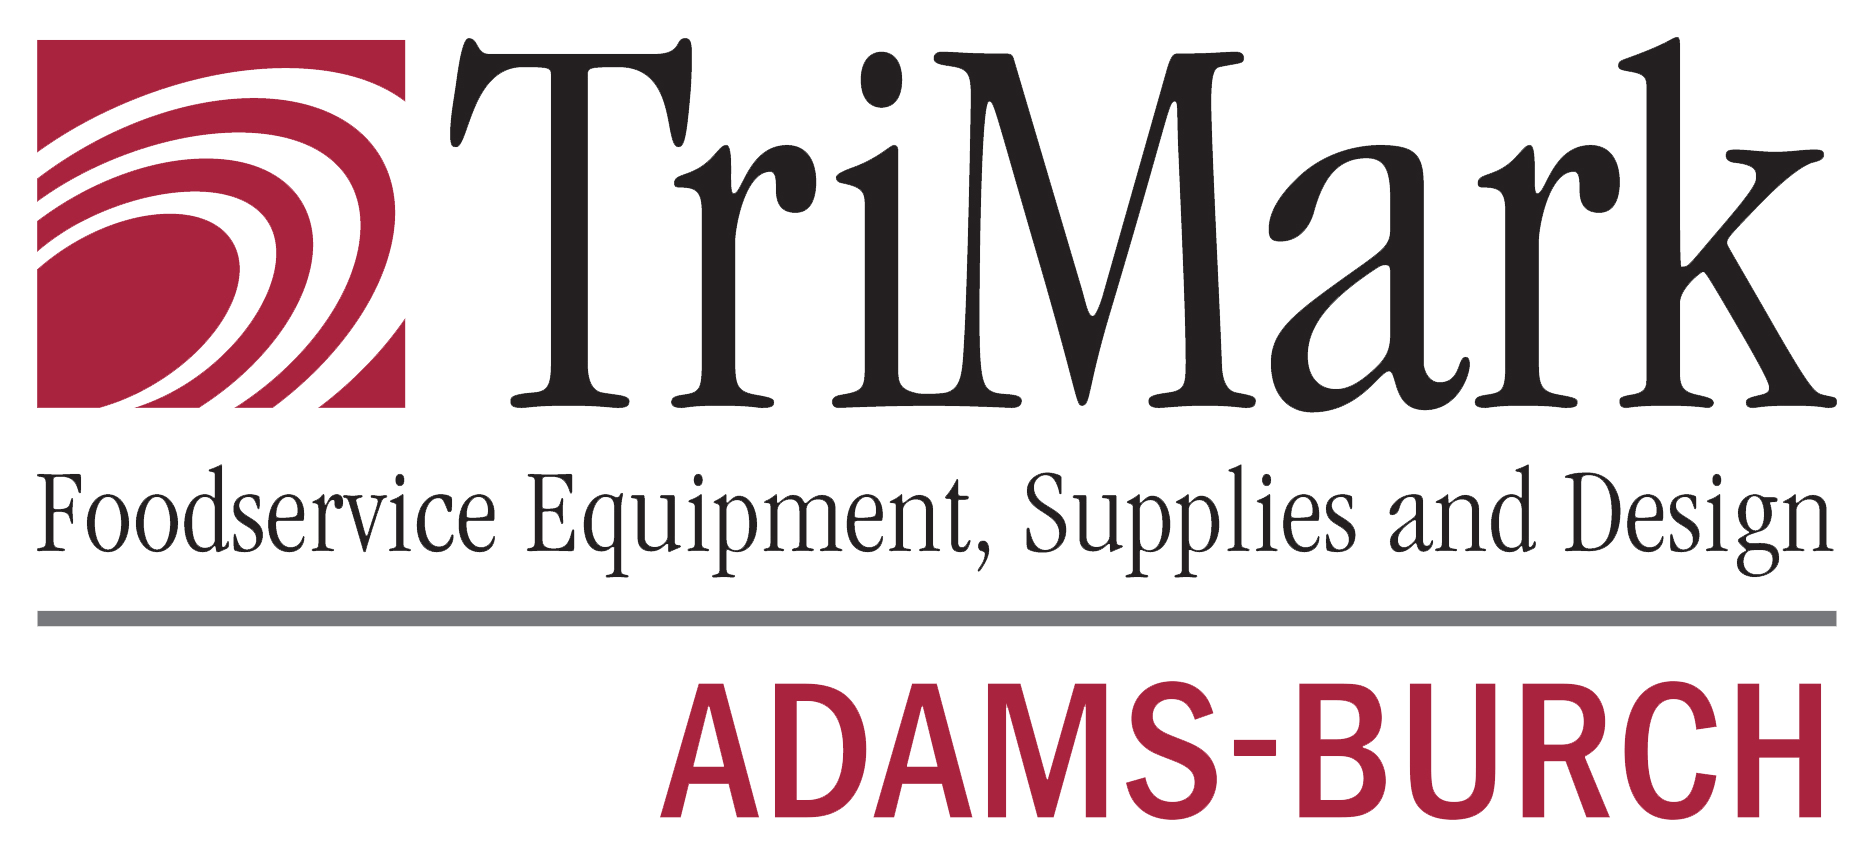 TriMark_Adams-Burch.png